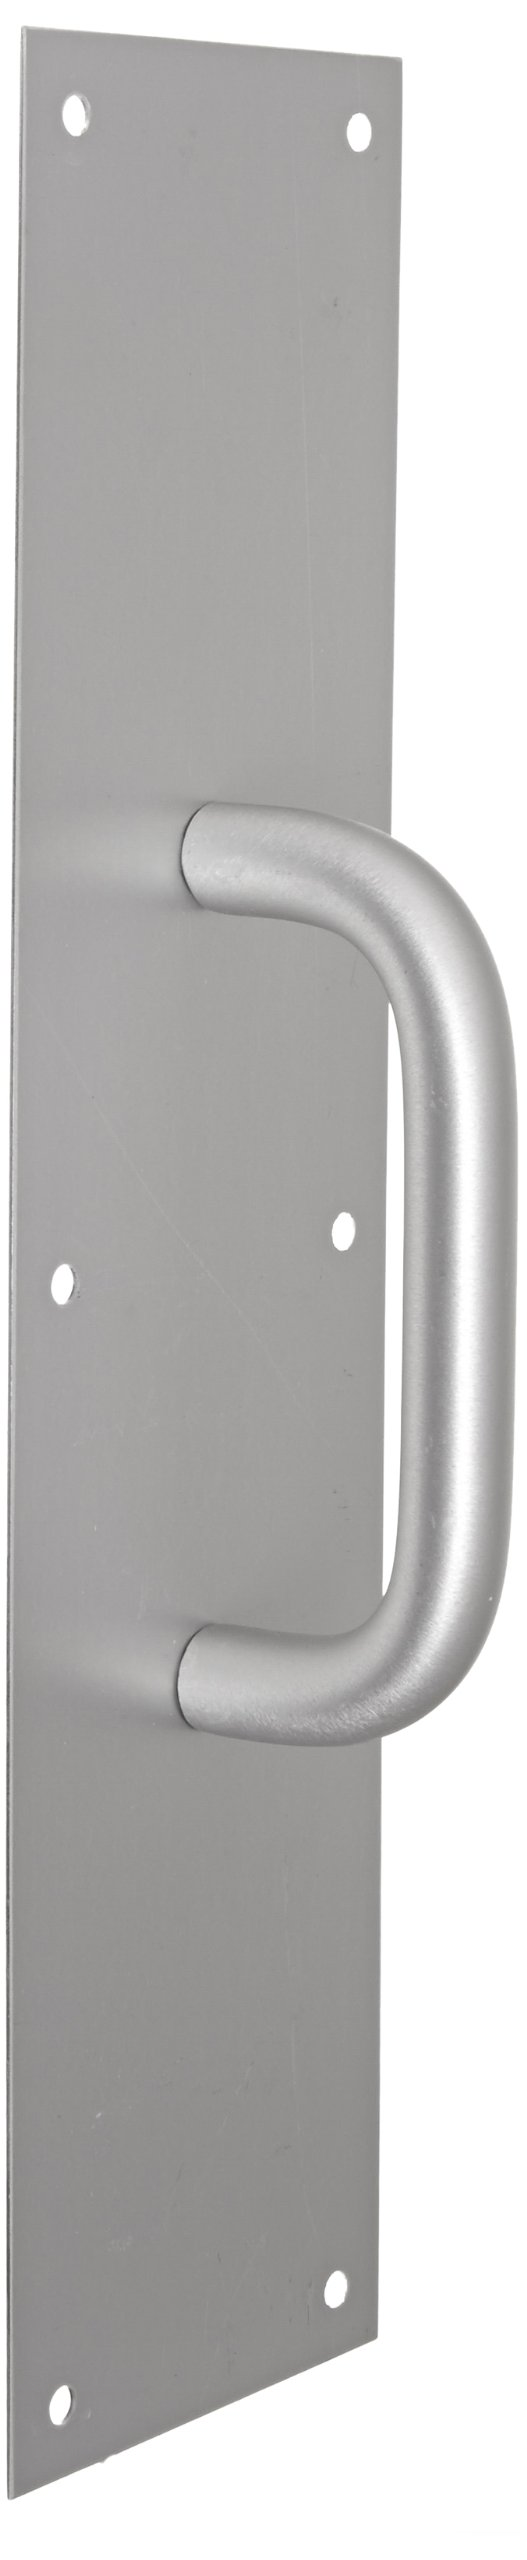 Rockwood 105 X 70C.28 Aluminum Pull Plate, 16'' Height x 4'' Width x 0.050'' Thick, 5-1/2'' Center-to-Center Handle Length, 3/4'' Pull Diameter, Clear Anodized Finish